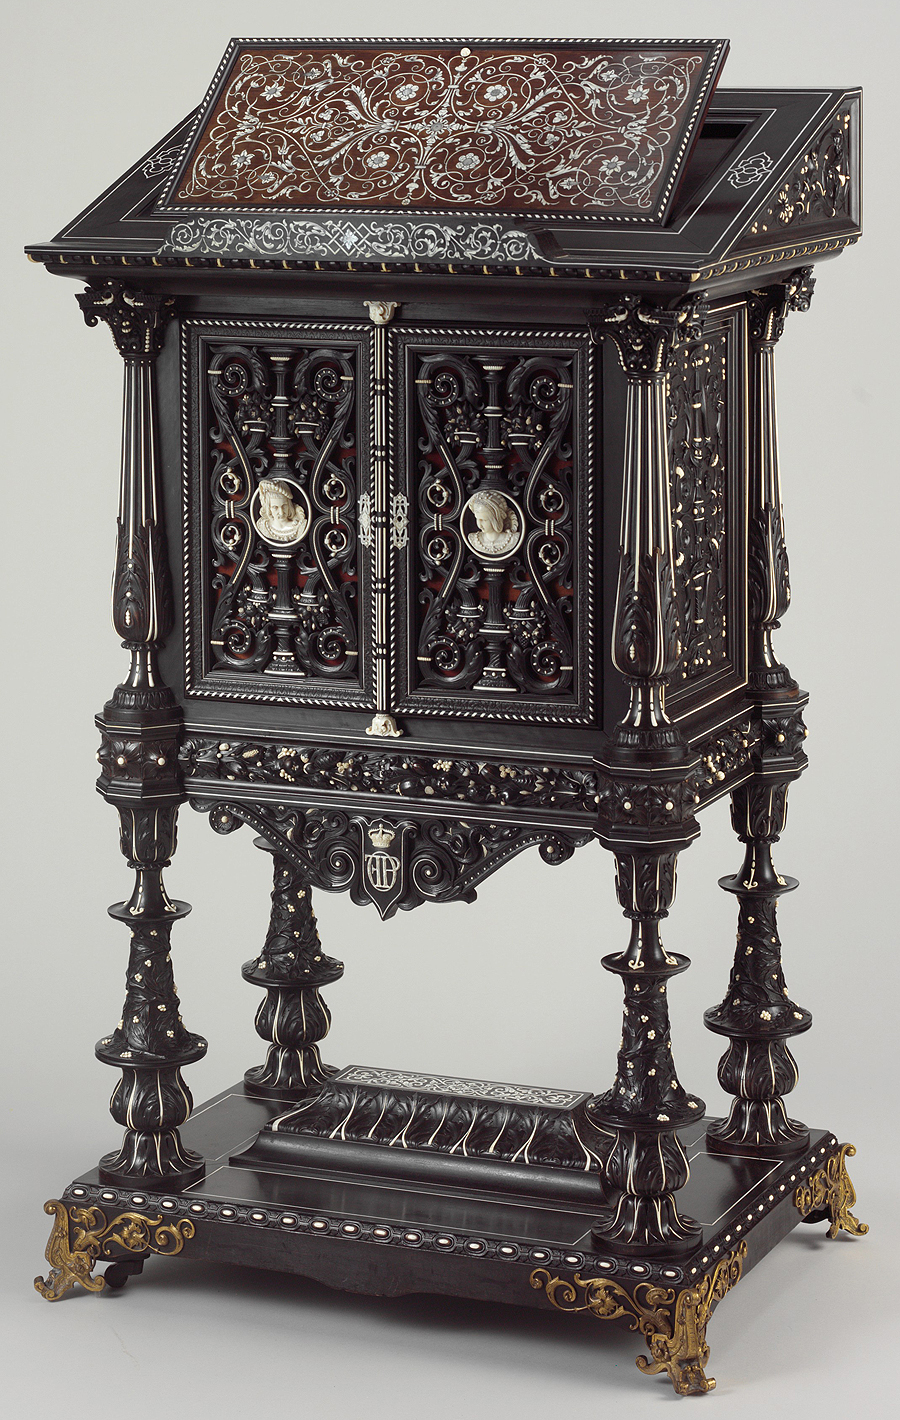 Bookstand, by Georges-Alphonse Jacob Desmalter, exhibited at the 1839 exposition  Luxury items still competed with technological inventions at the expositions of the July Monarchy.